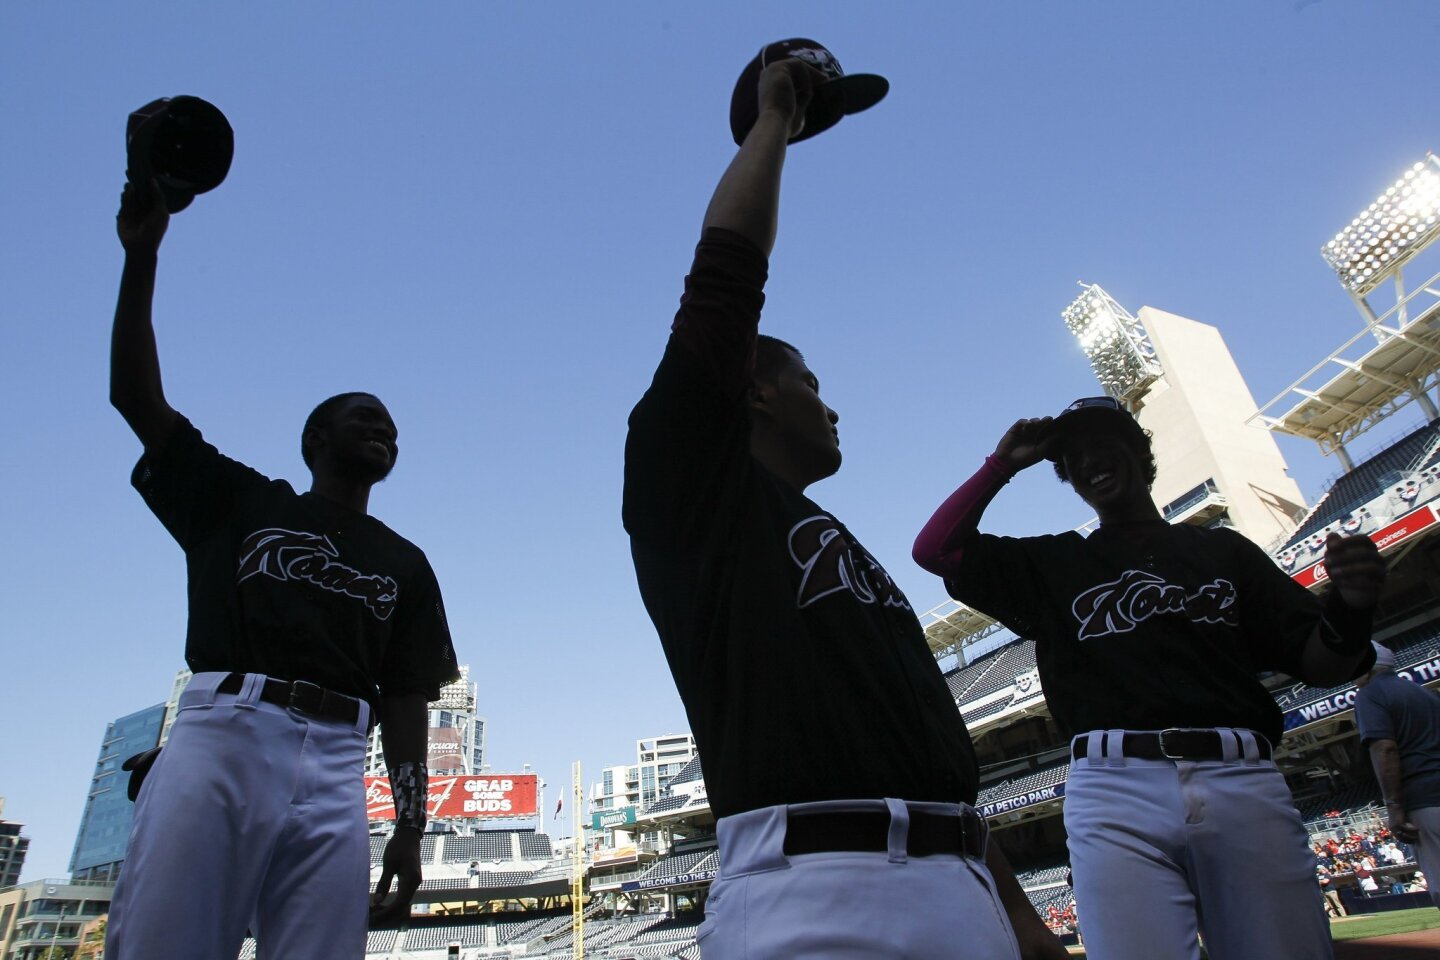 Kearny's Travis Gooden, left, Dan Agulto, center, and Smitt Thirakul have fun seeing what it's like to step out of the dugout and tip their caps like the pros before they play Hoover at Petco Park on Friday. 4/17/15